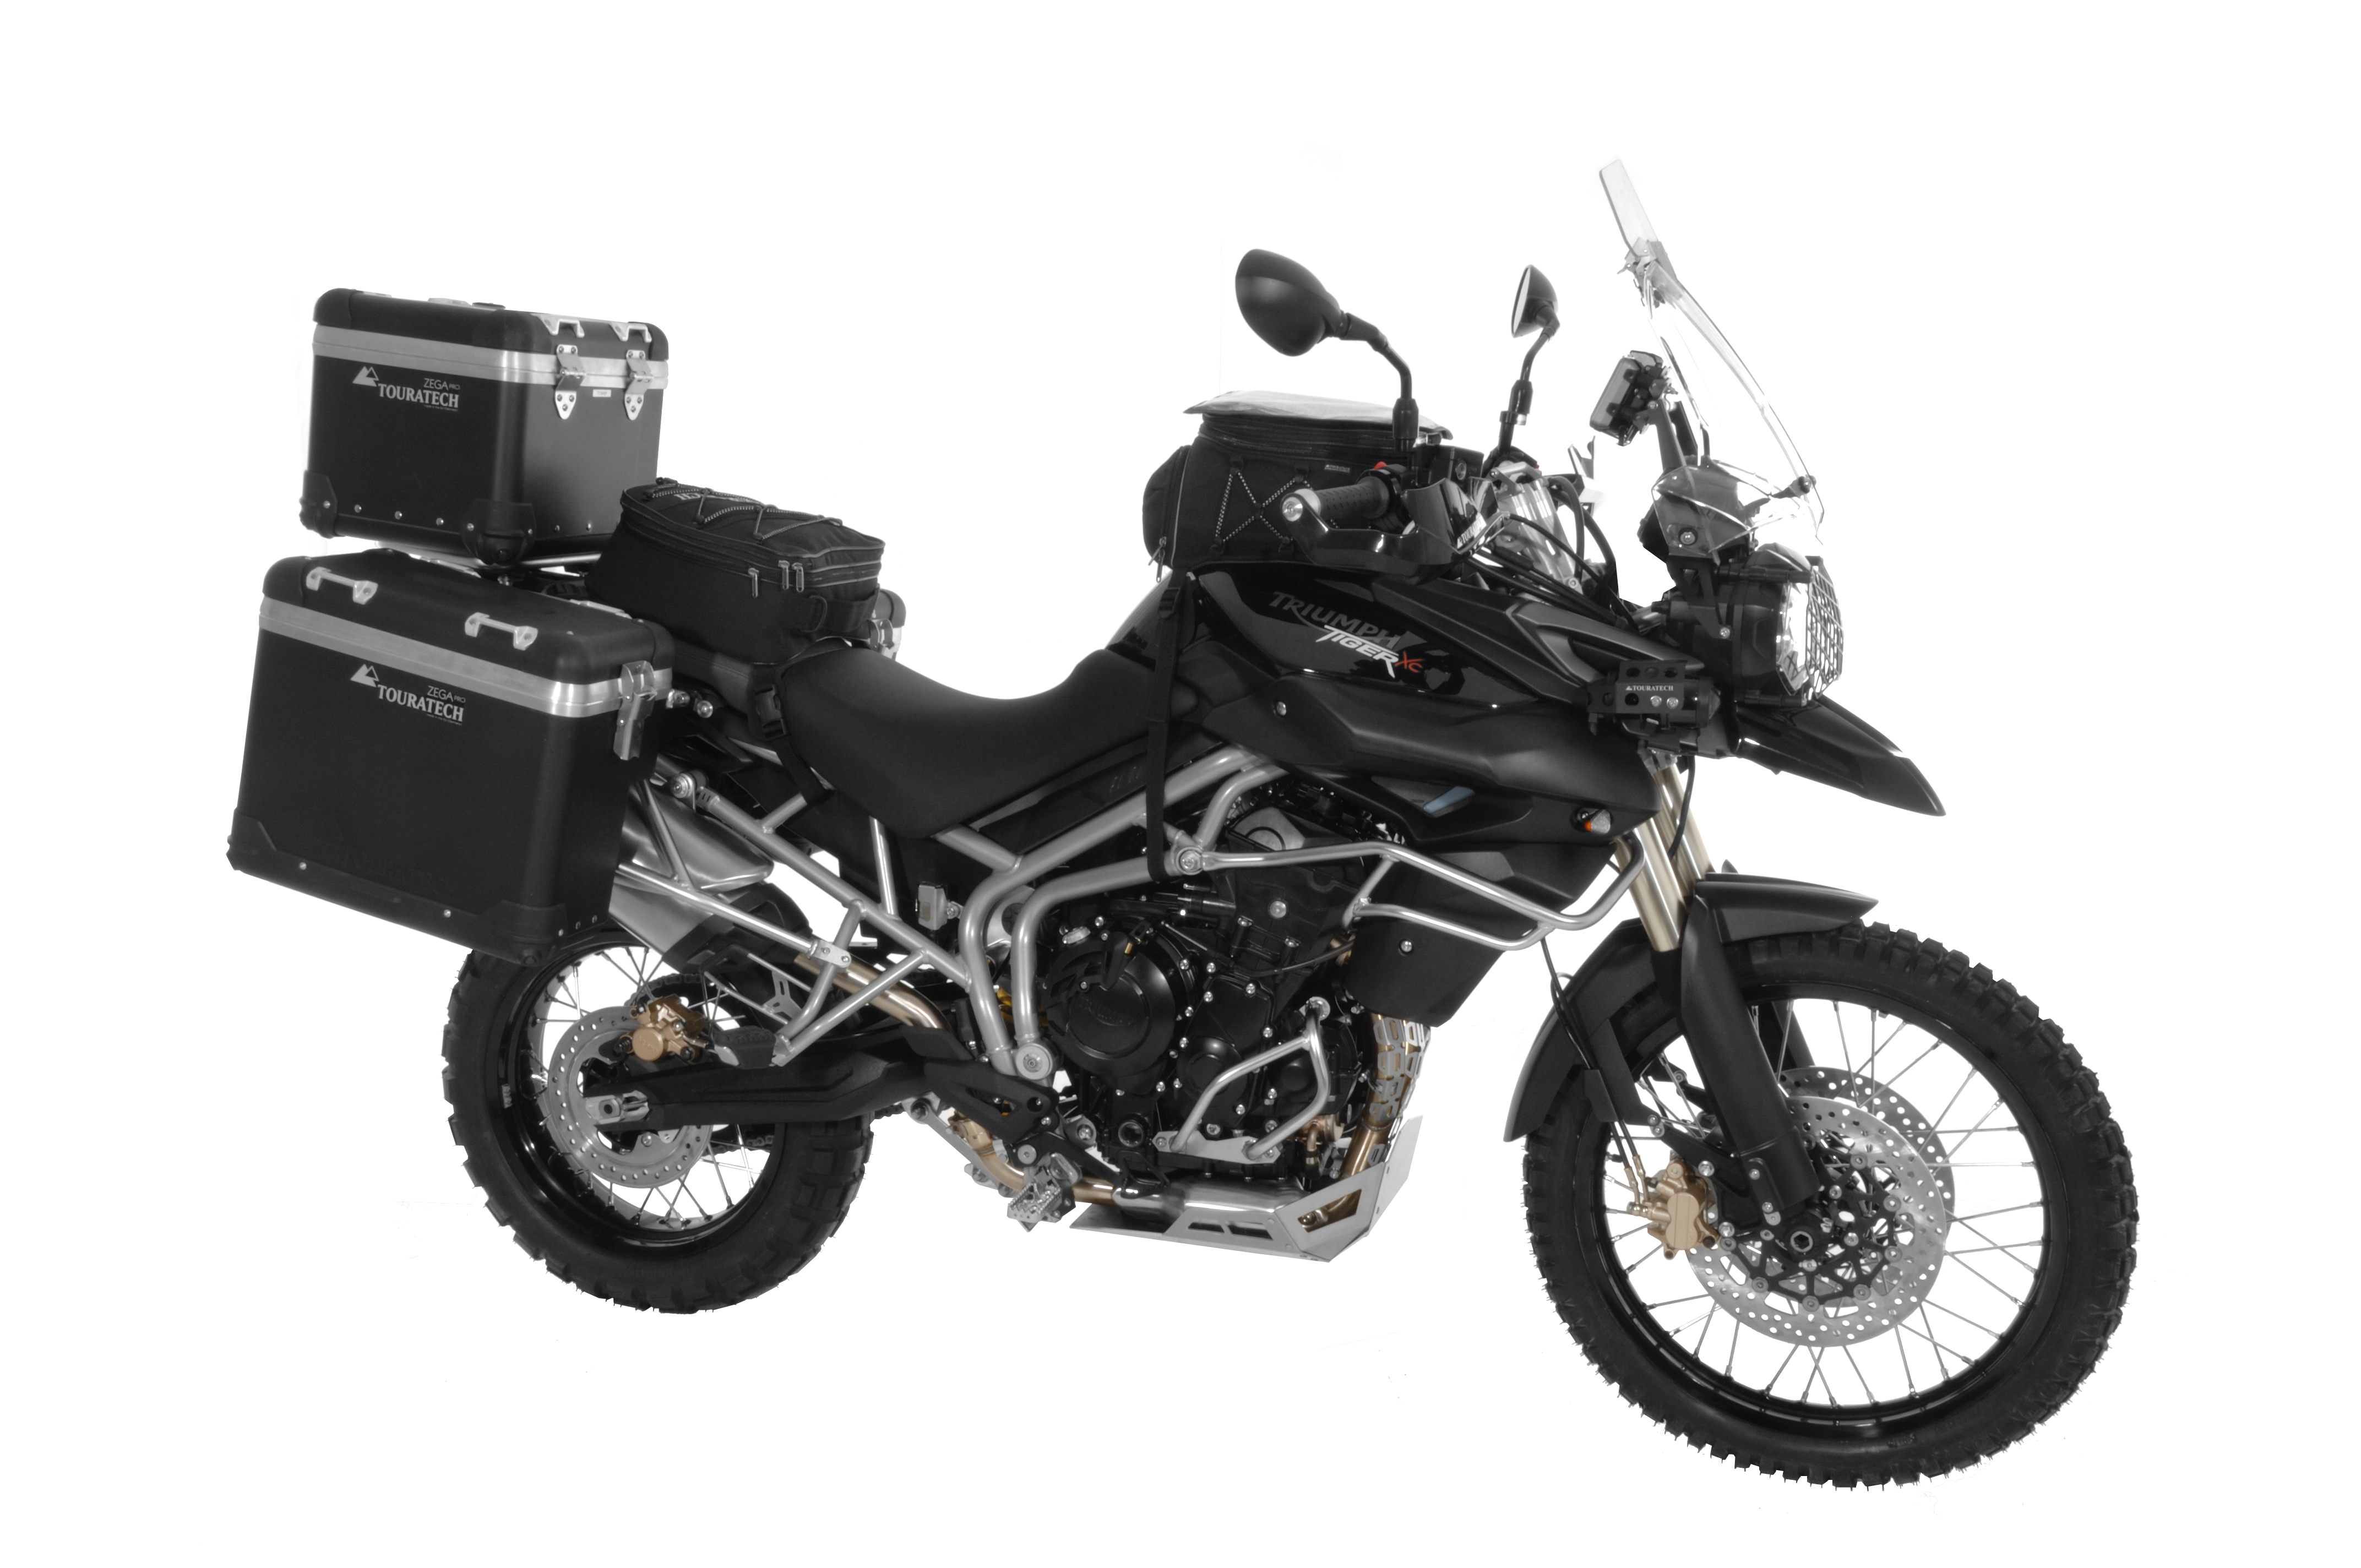 triumph tiger 800 xc accessories now available from touratech